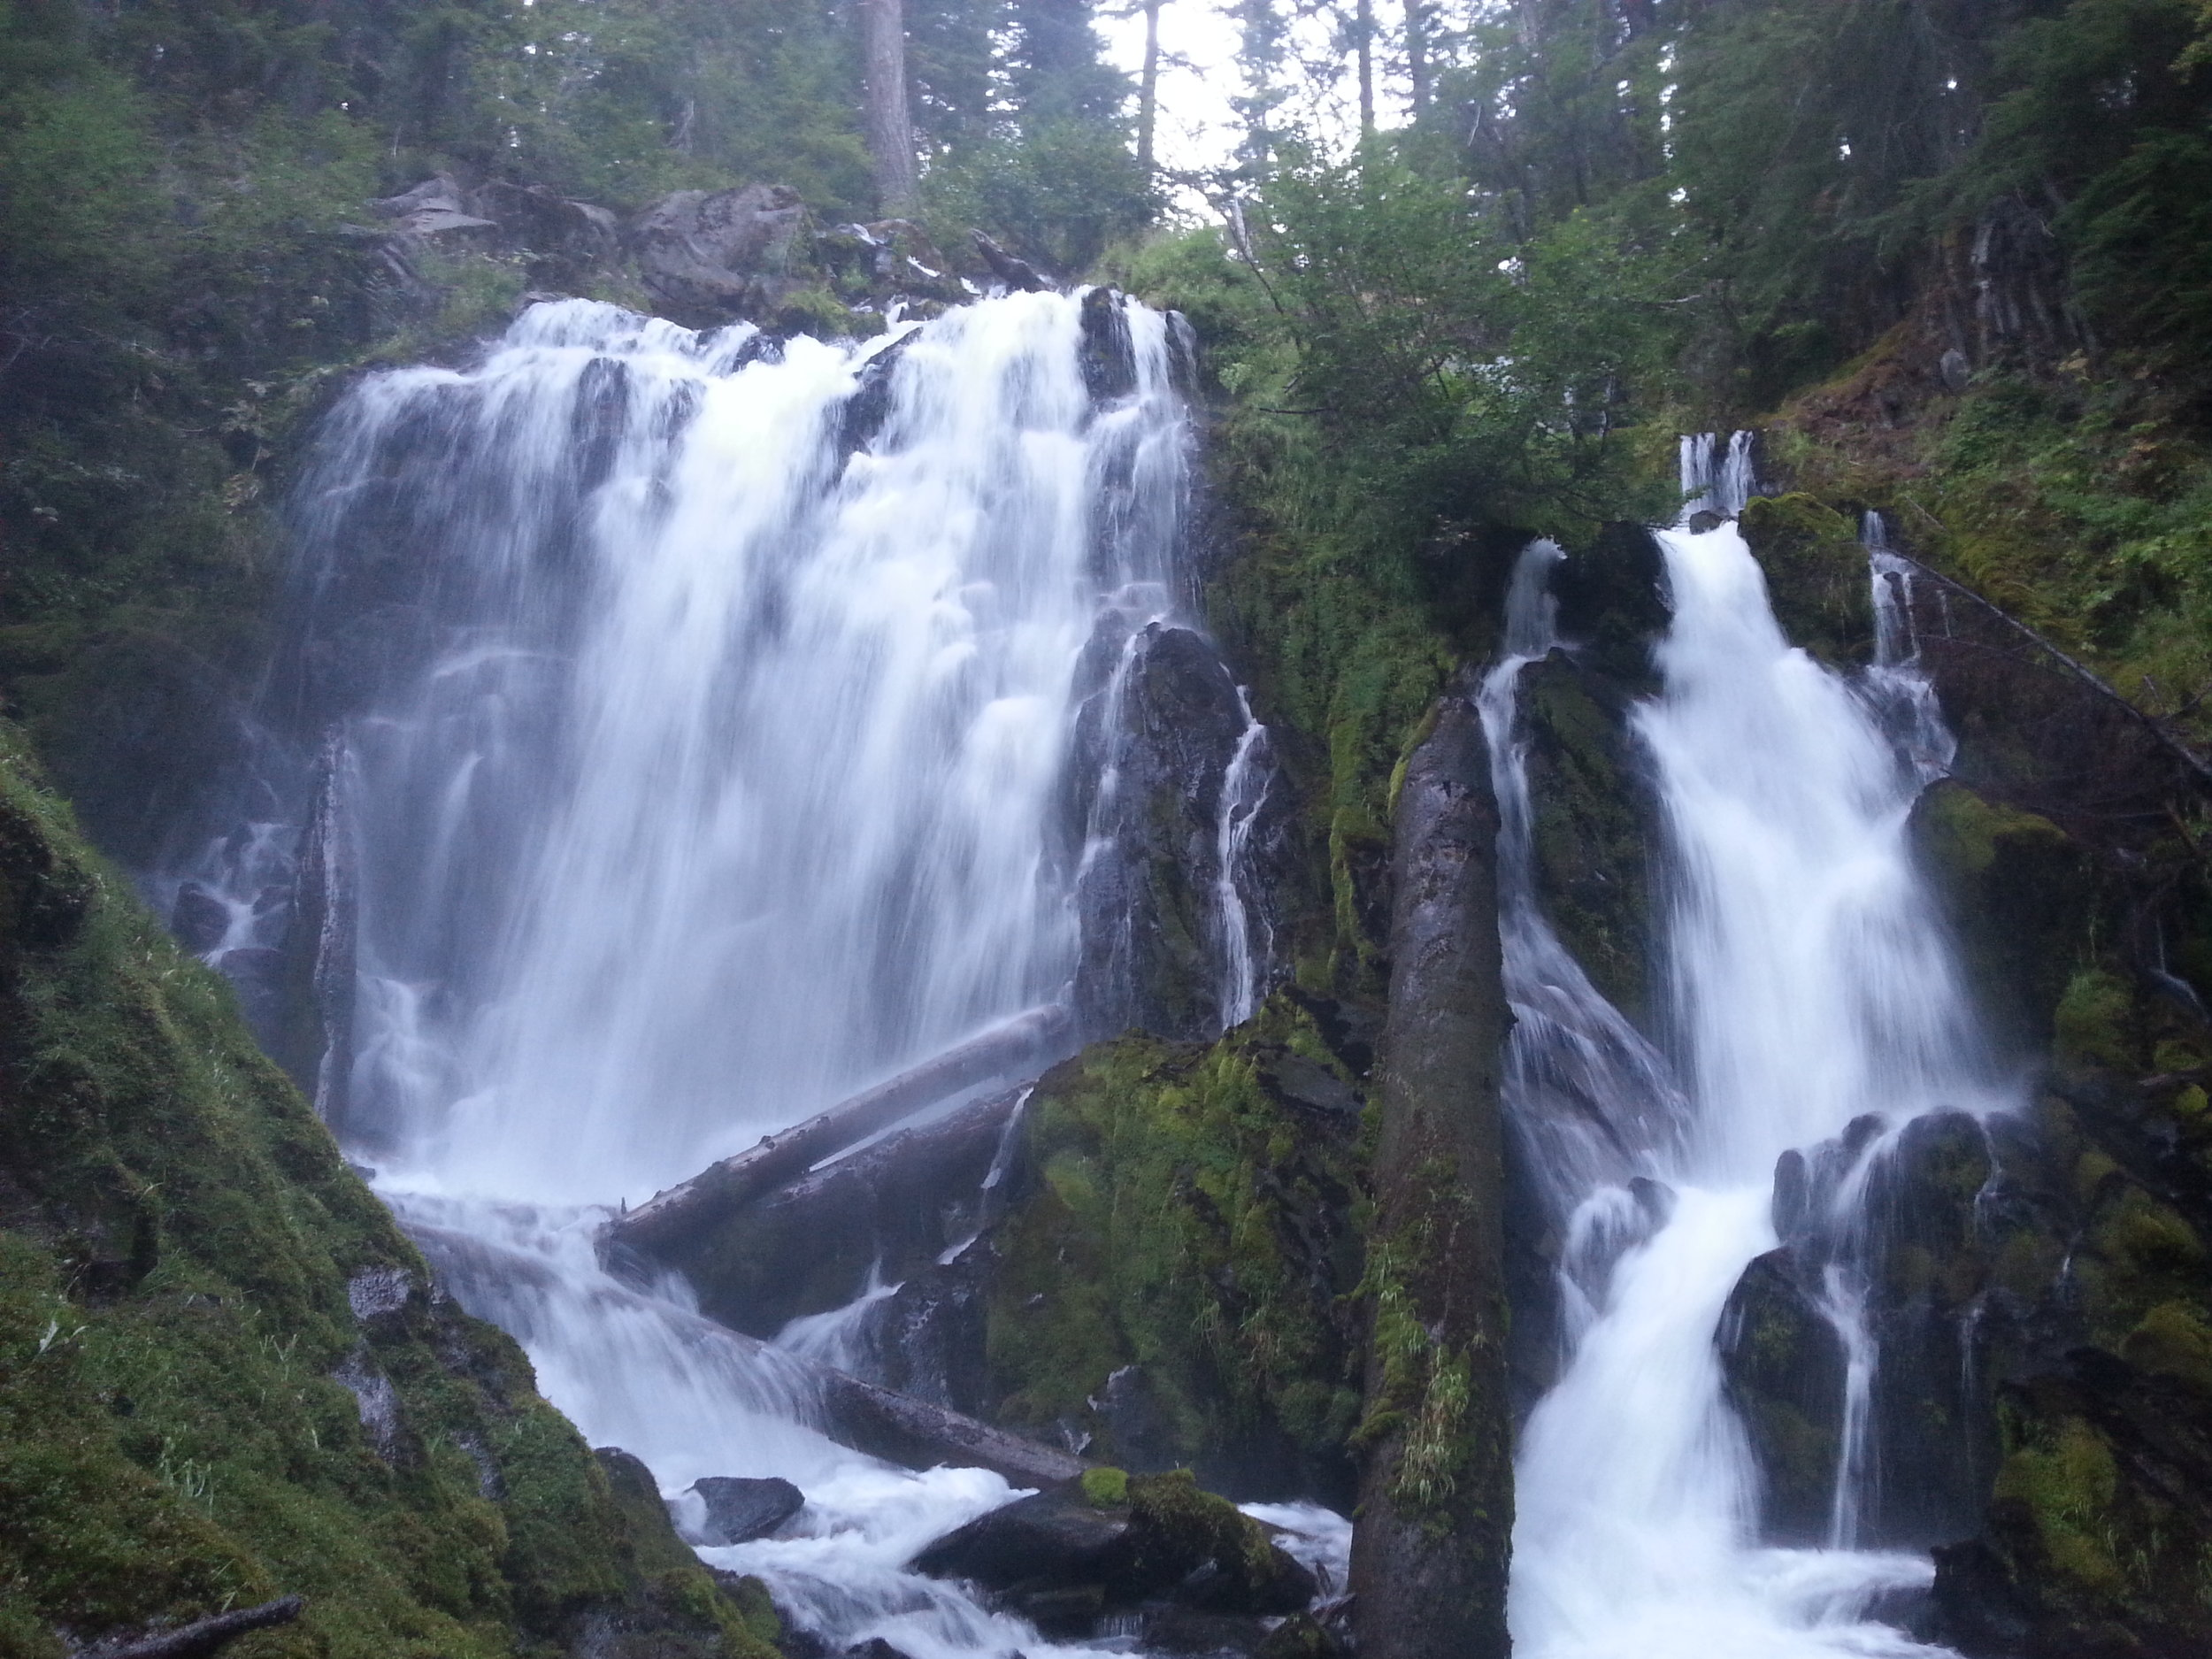 NATIONAL CREEK FALLS - Waterfalls - What to do in Southern Oregon - Things to do - Hikes - Kids